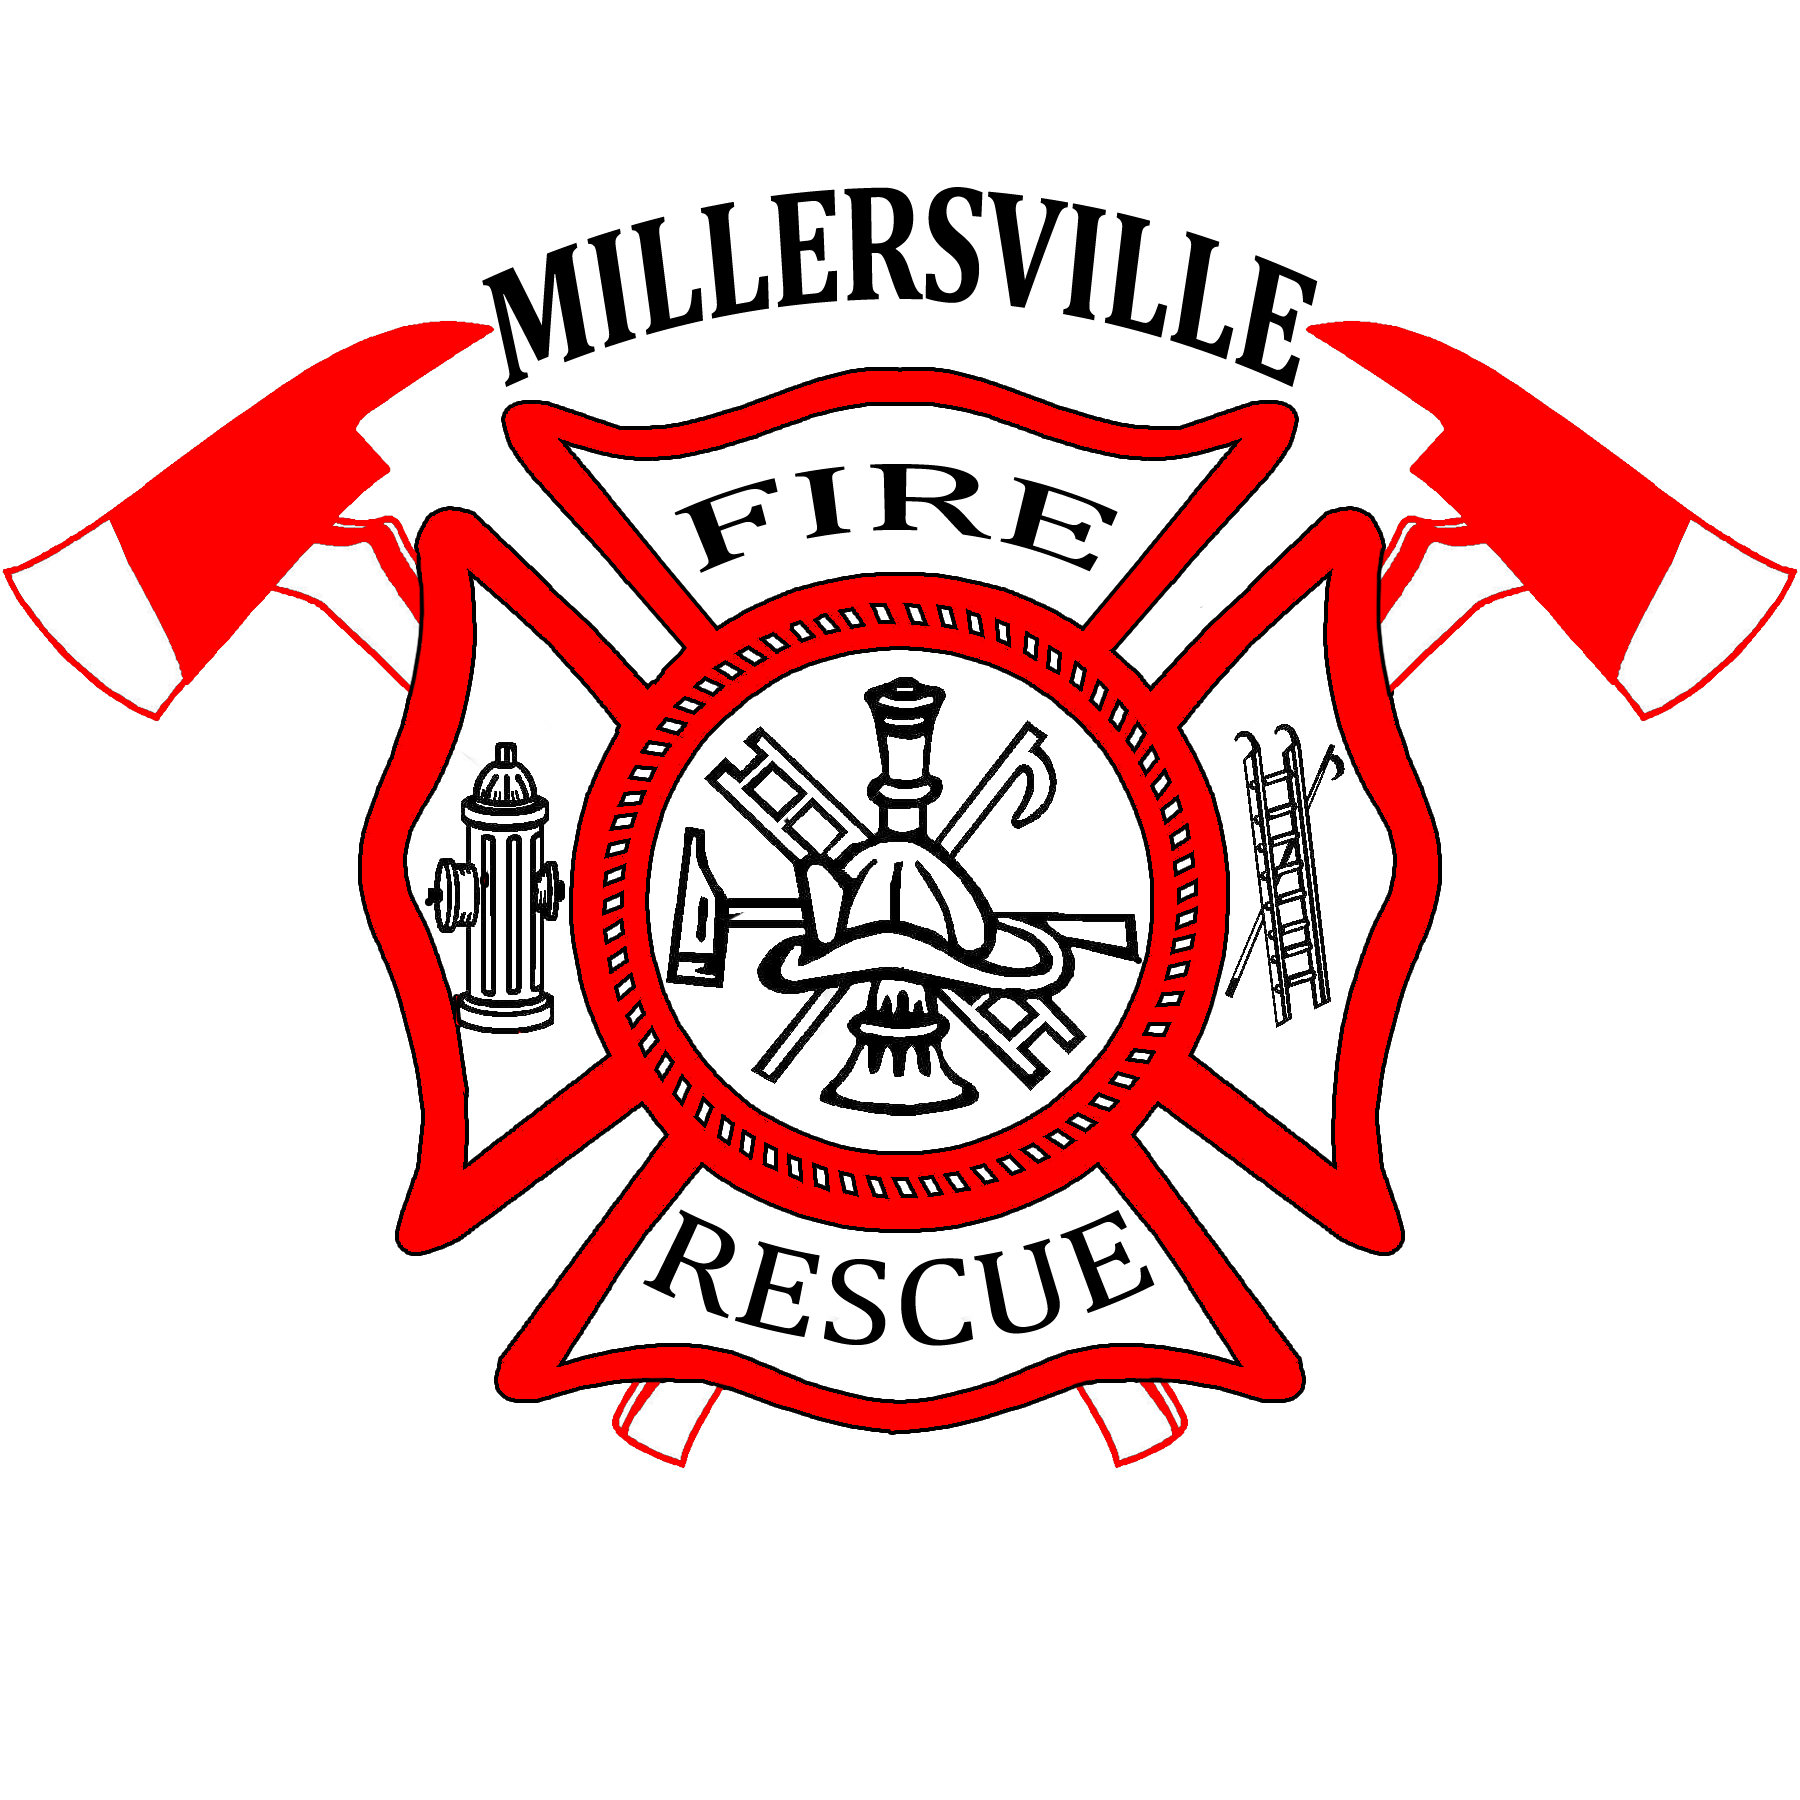 clip art free download Logo n free image. Vector crest fire department